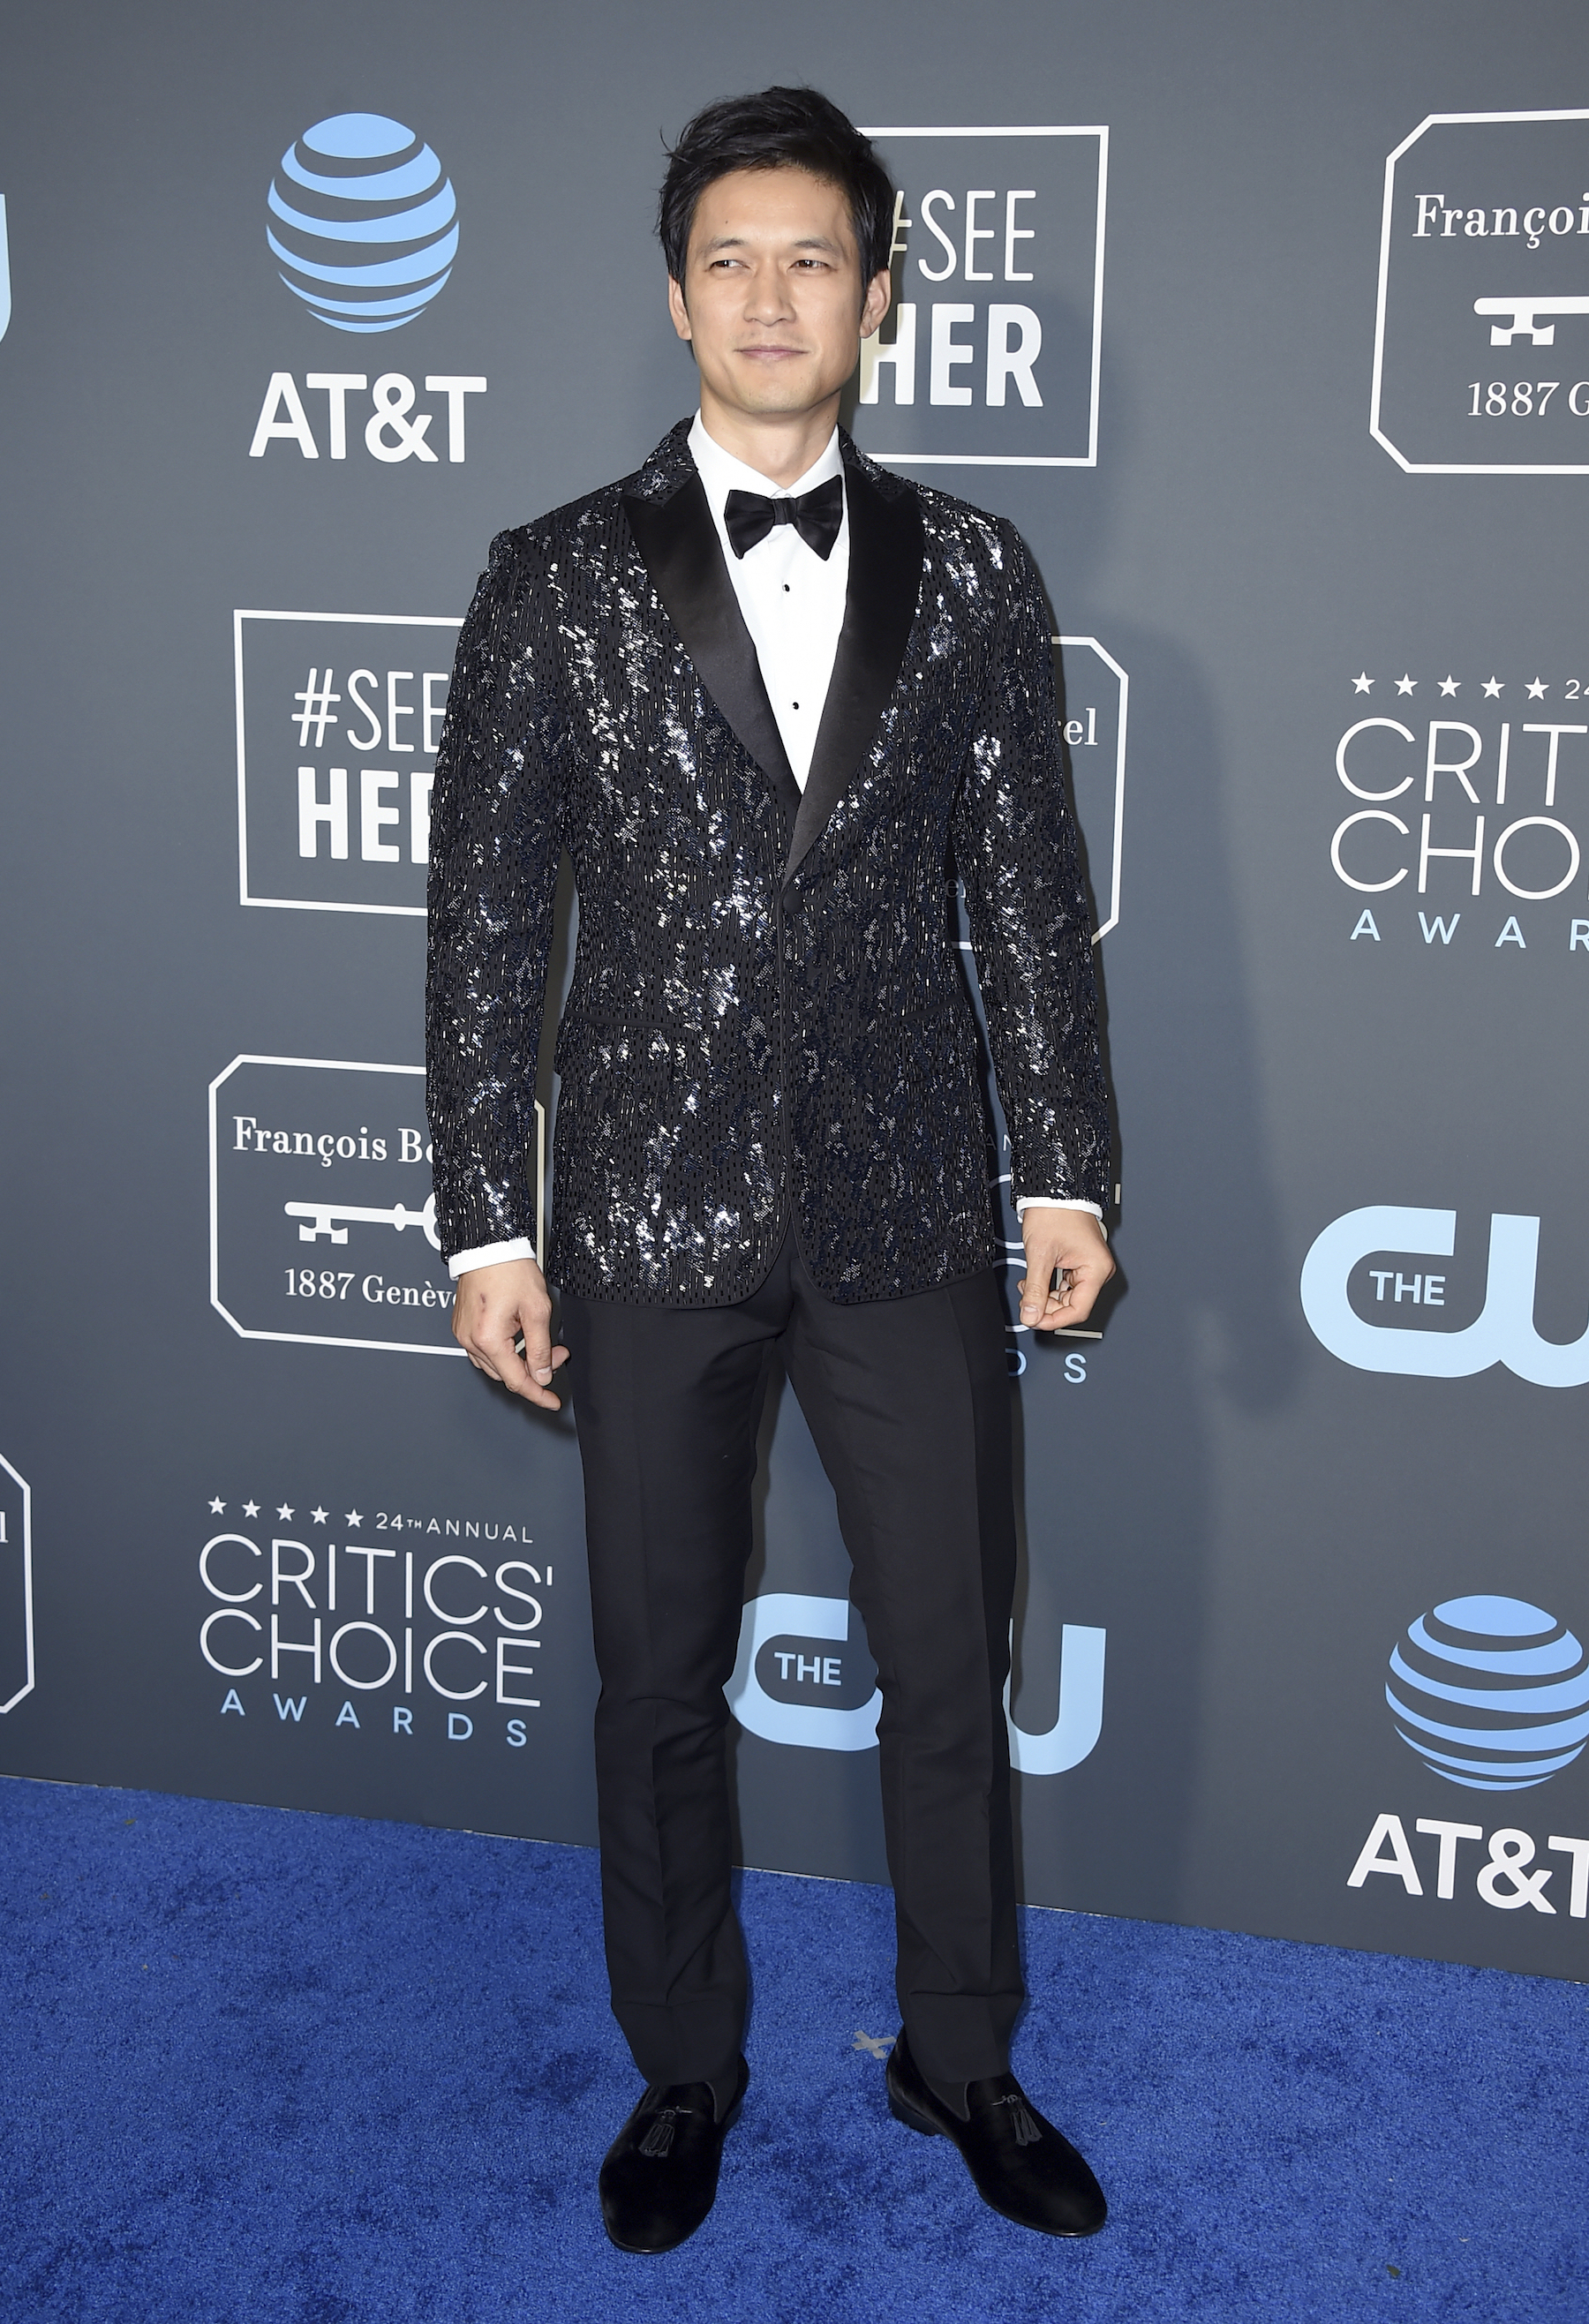 <div class='meta'><div class='origin-logo' data-origin='AP'></div><span class='caption-text' data-credit='Jordan Strauss/Invision/AP'>Harry Shum Jr. arrives at the 24th annual Critics' Choice Awards on Sunday, Jan. 13, 2019, at the Barker Hangar in Santa Monica, Calif.</span></div>